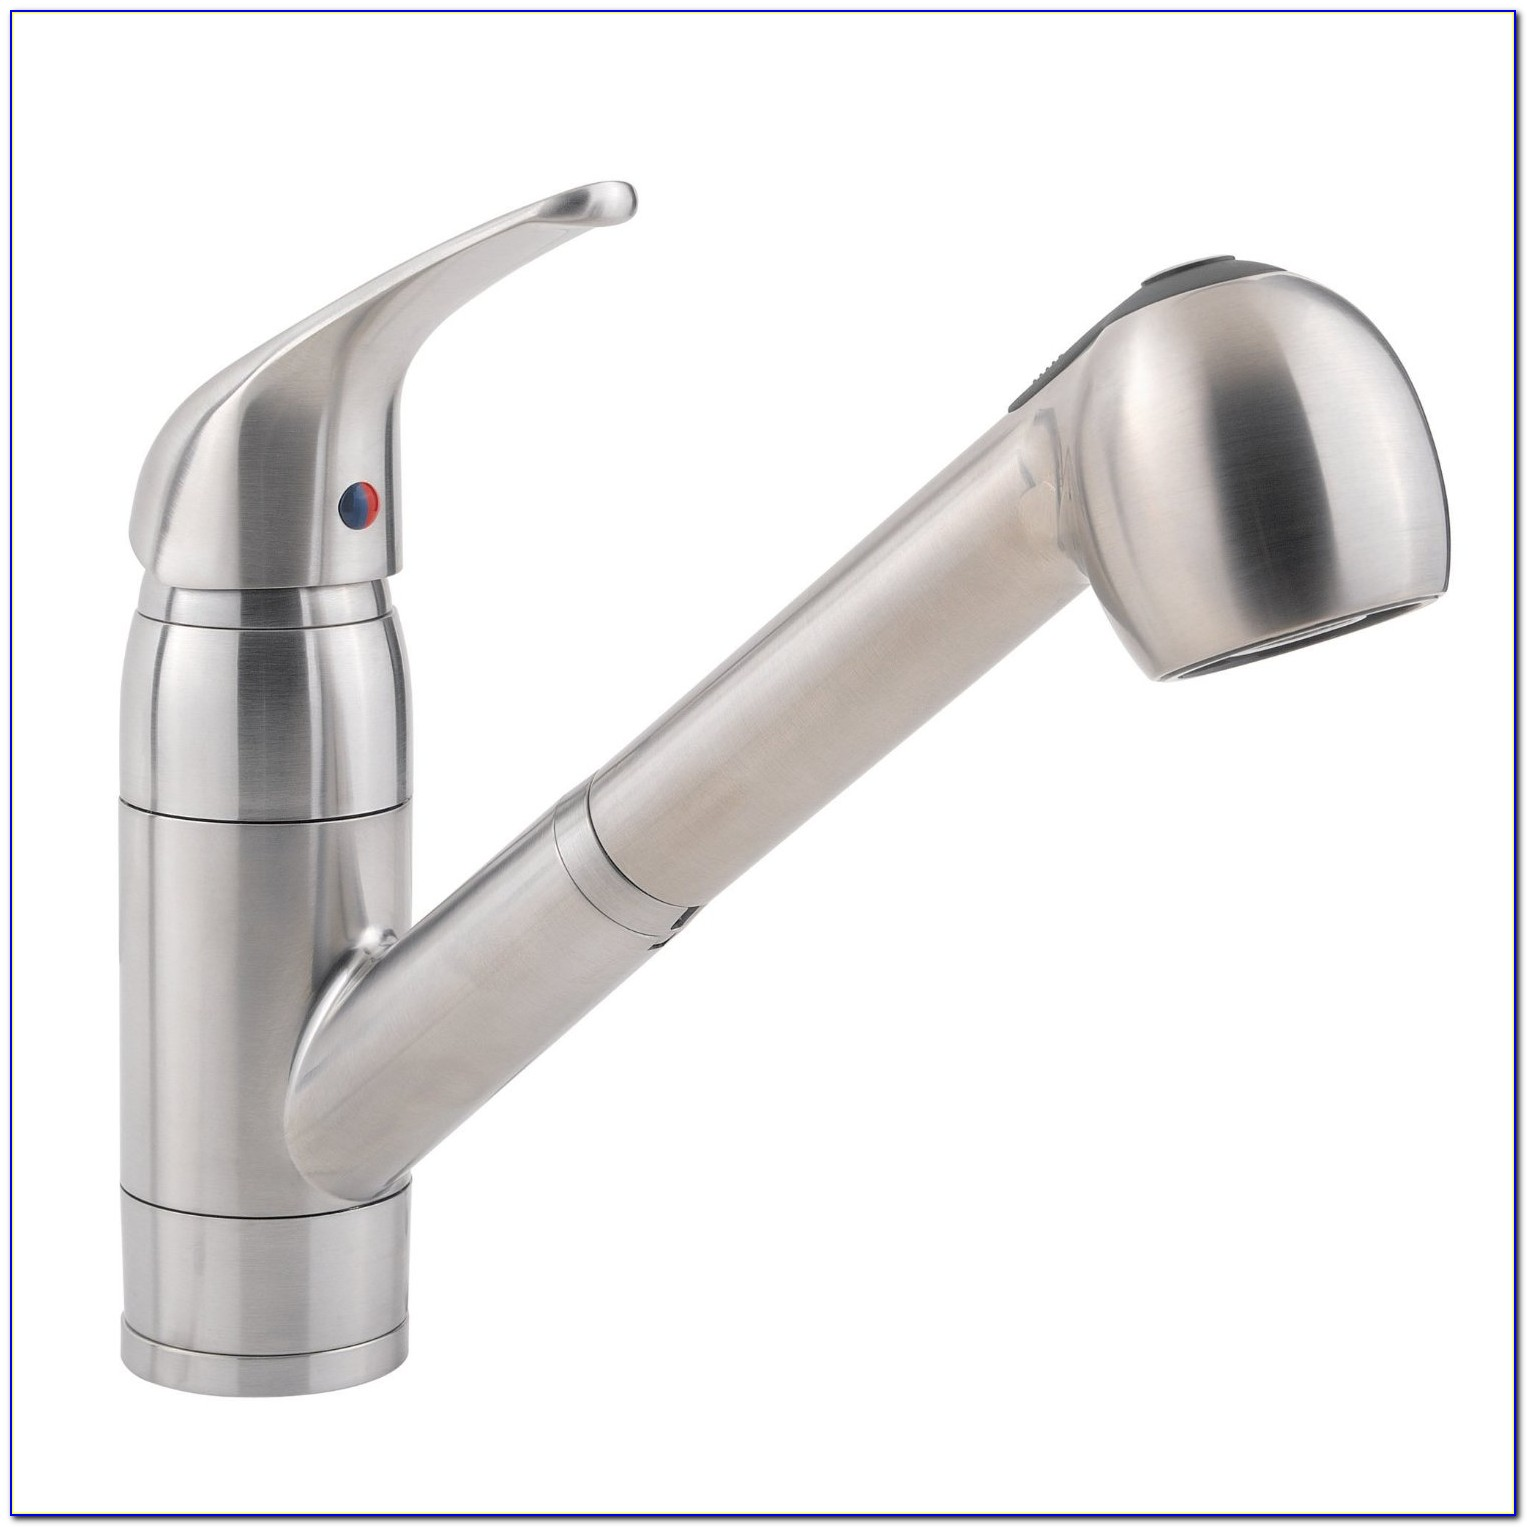 Kohler Malleco Touchless Kitchen Faucet With Soap Dispenser